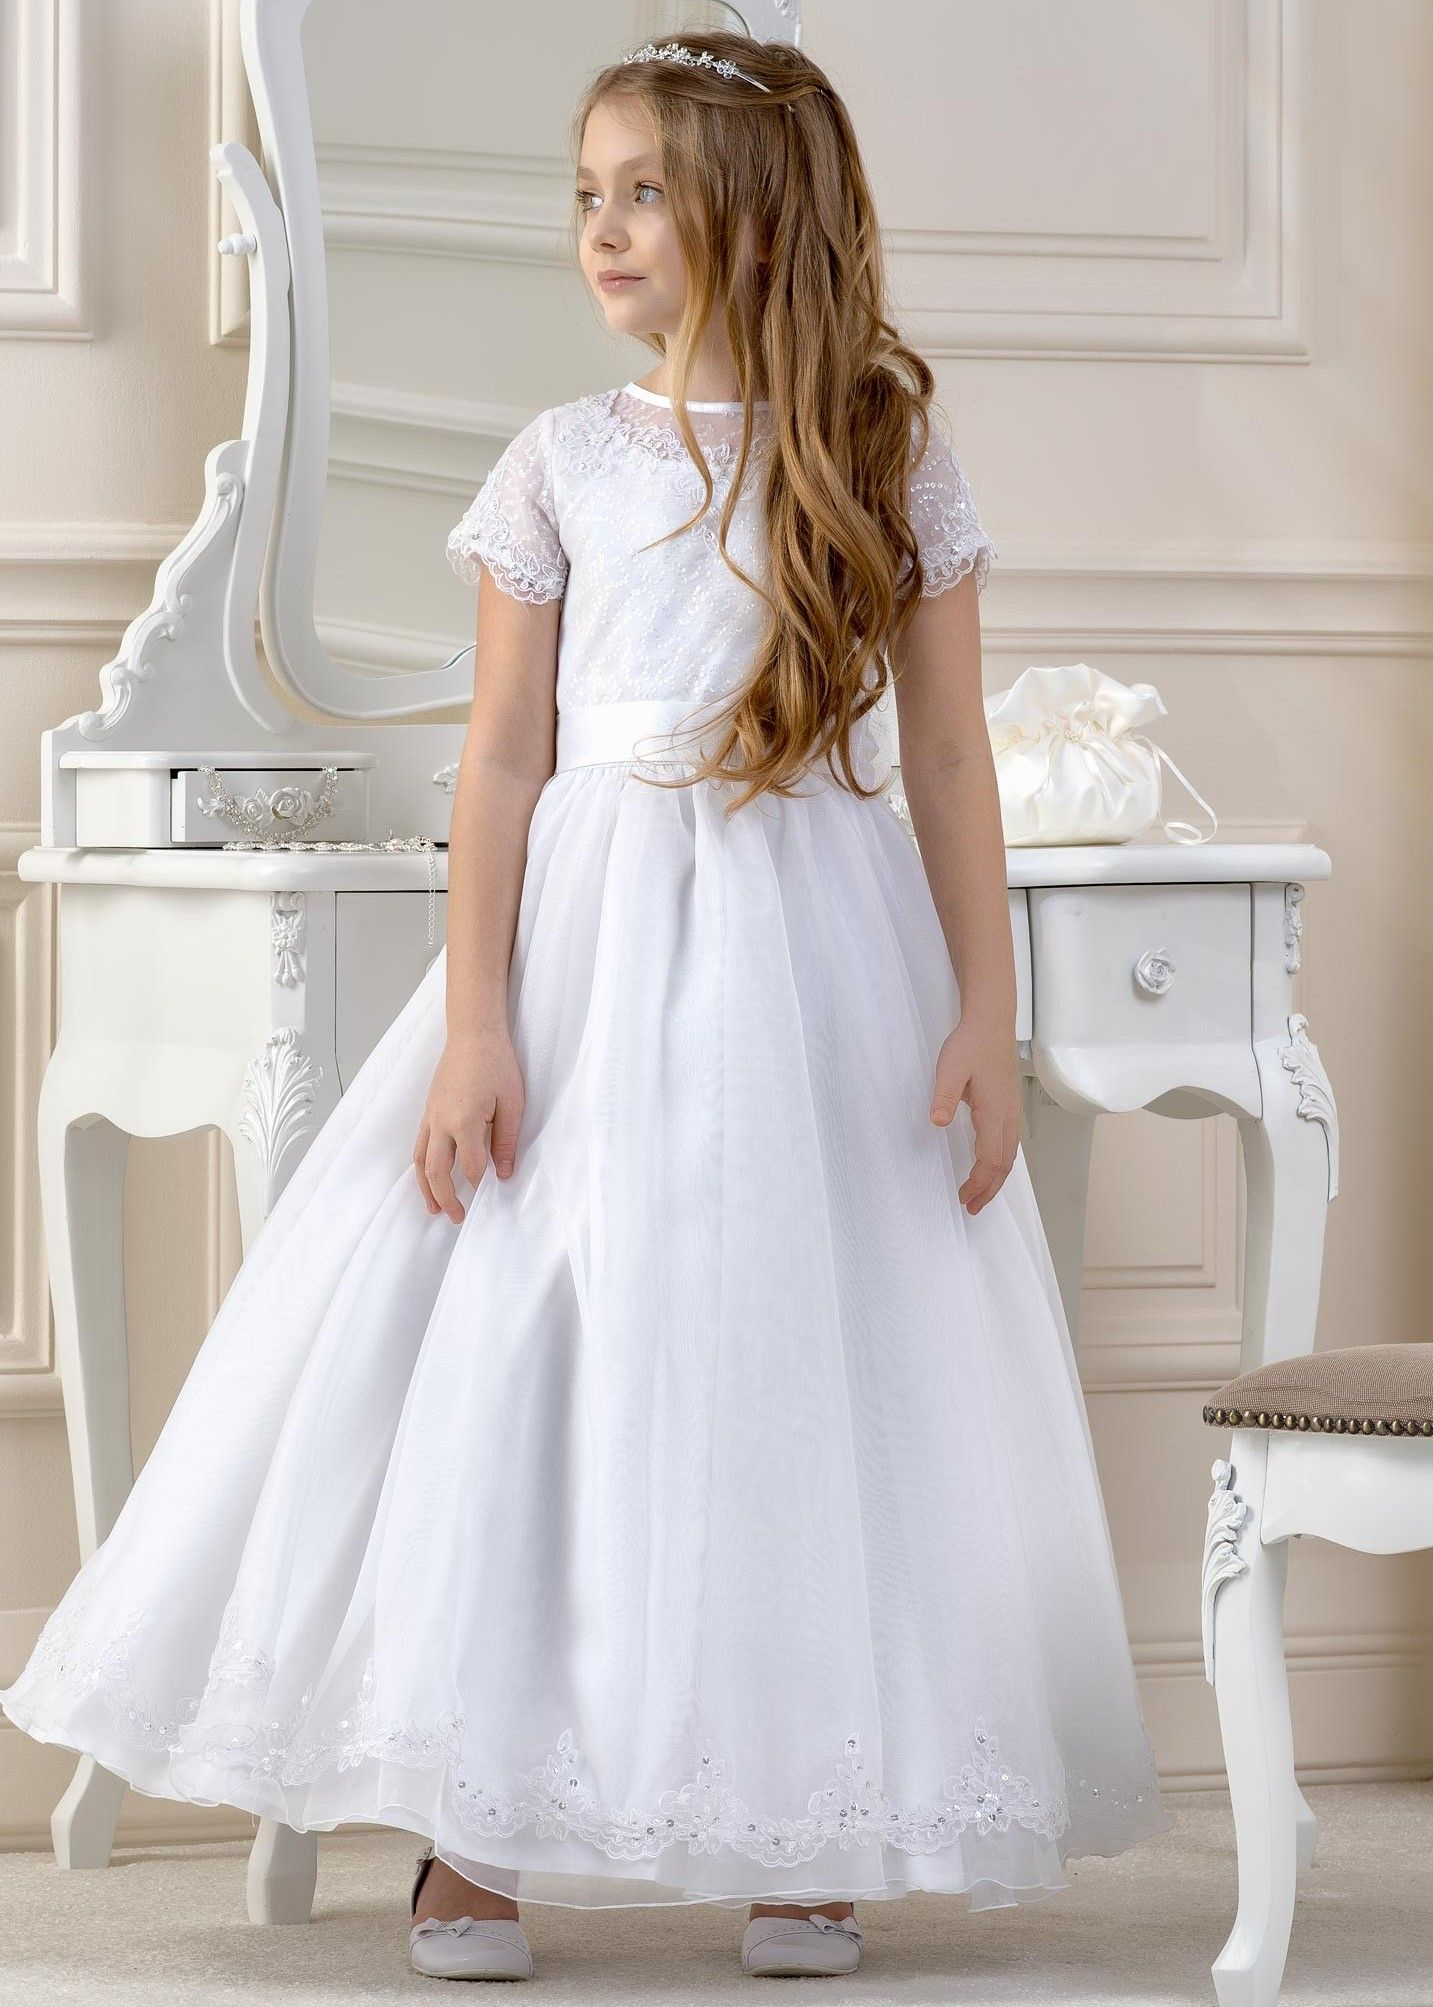 284015a9 13 years - Communion Dresses for 13 year olds - Age / Size 13 yrs ...